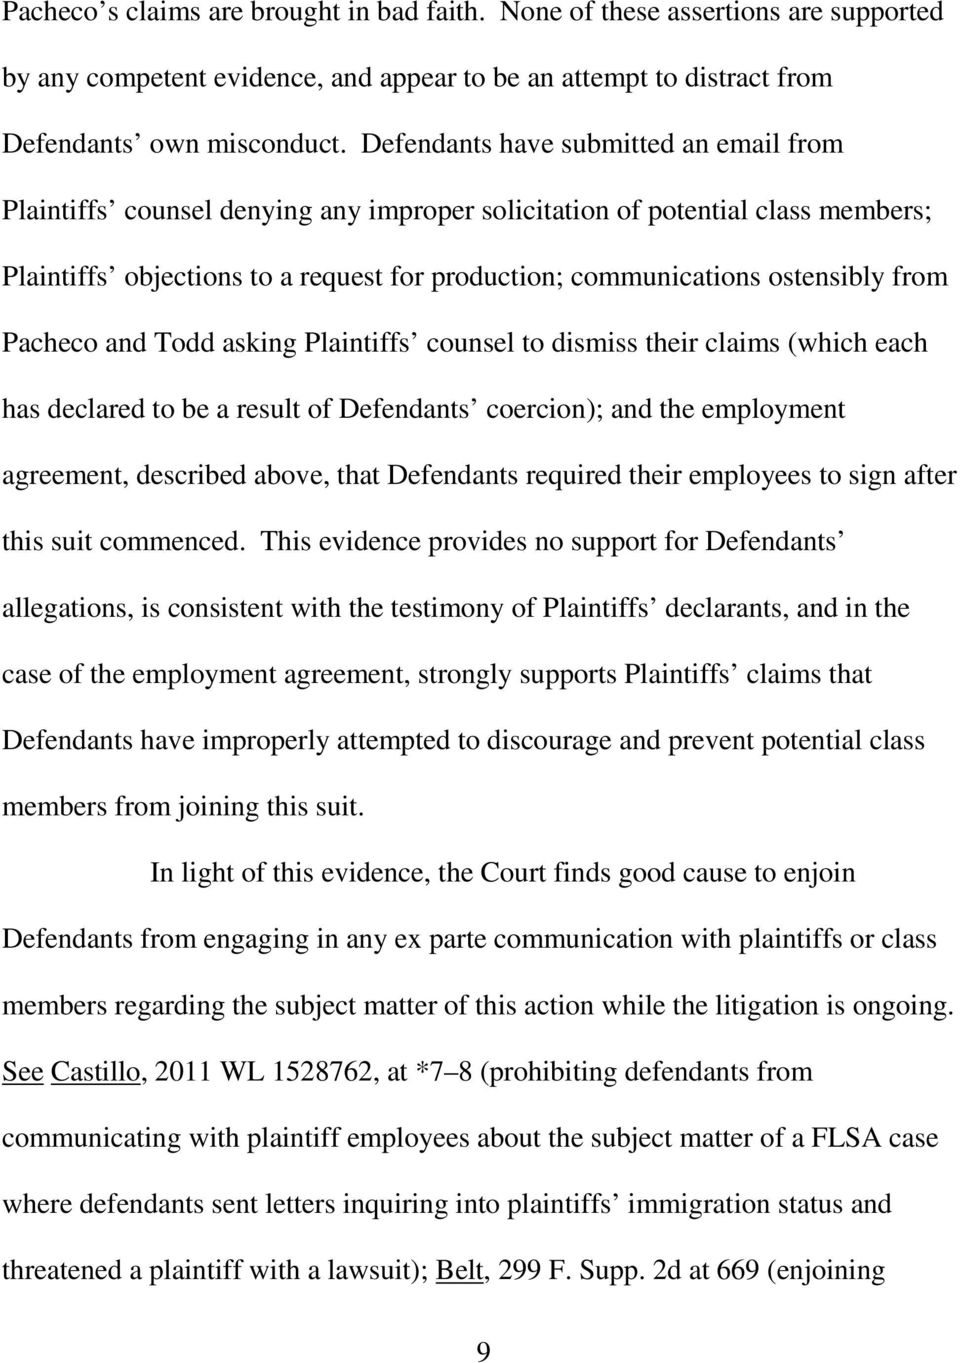 from Pacheco and Todd asking Plaintiffs counsel to dismiss their claims (which each has declared to be a result of Defendants coercion); and the employment agreement, described above, that Defendants